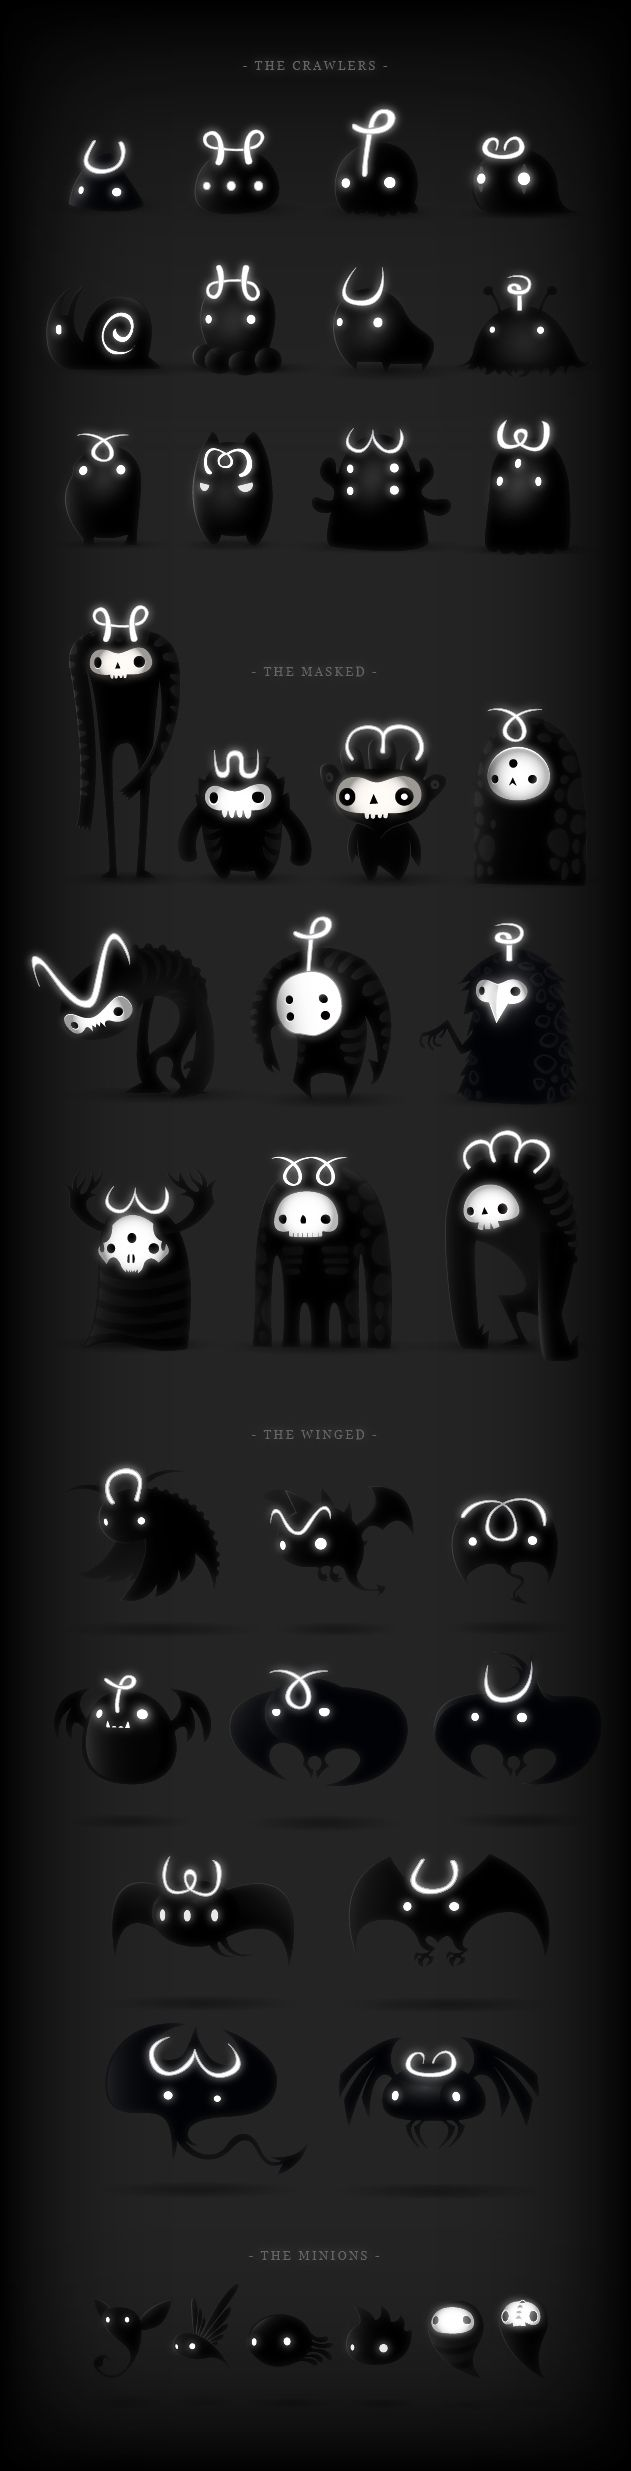 Darklings / Mobile game